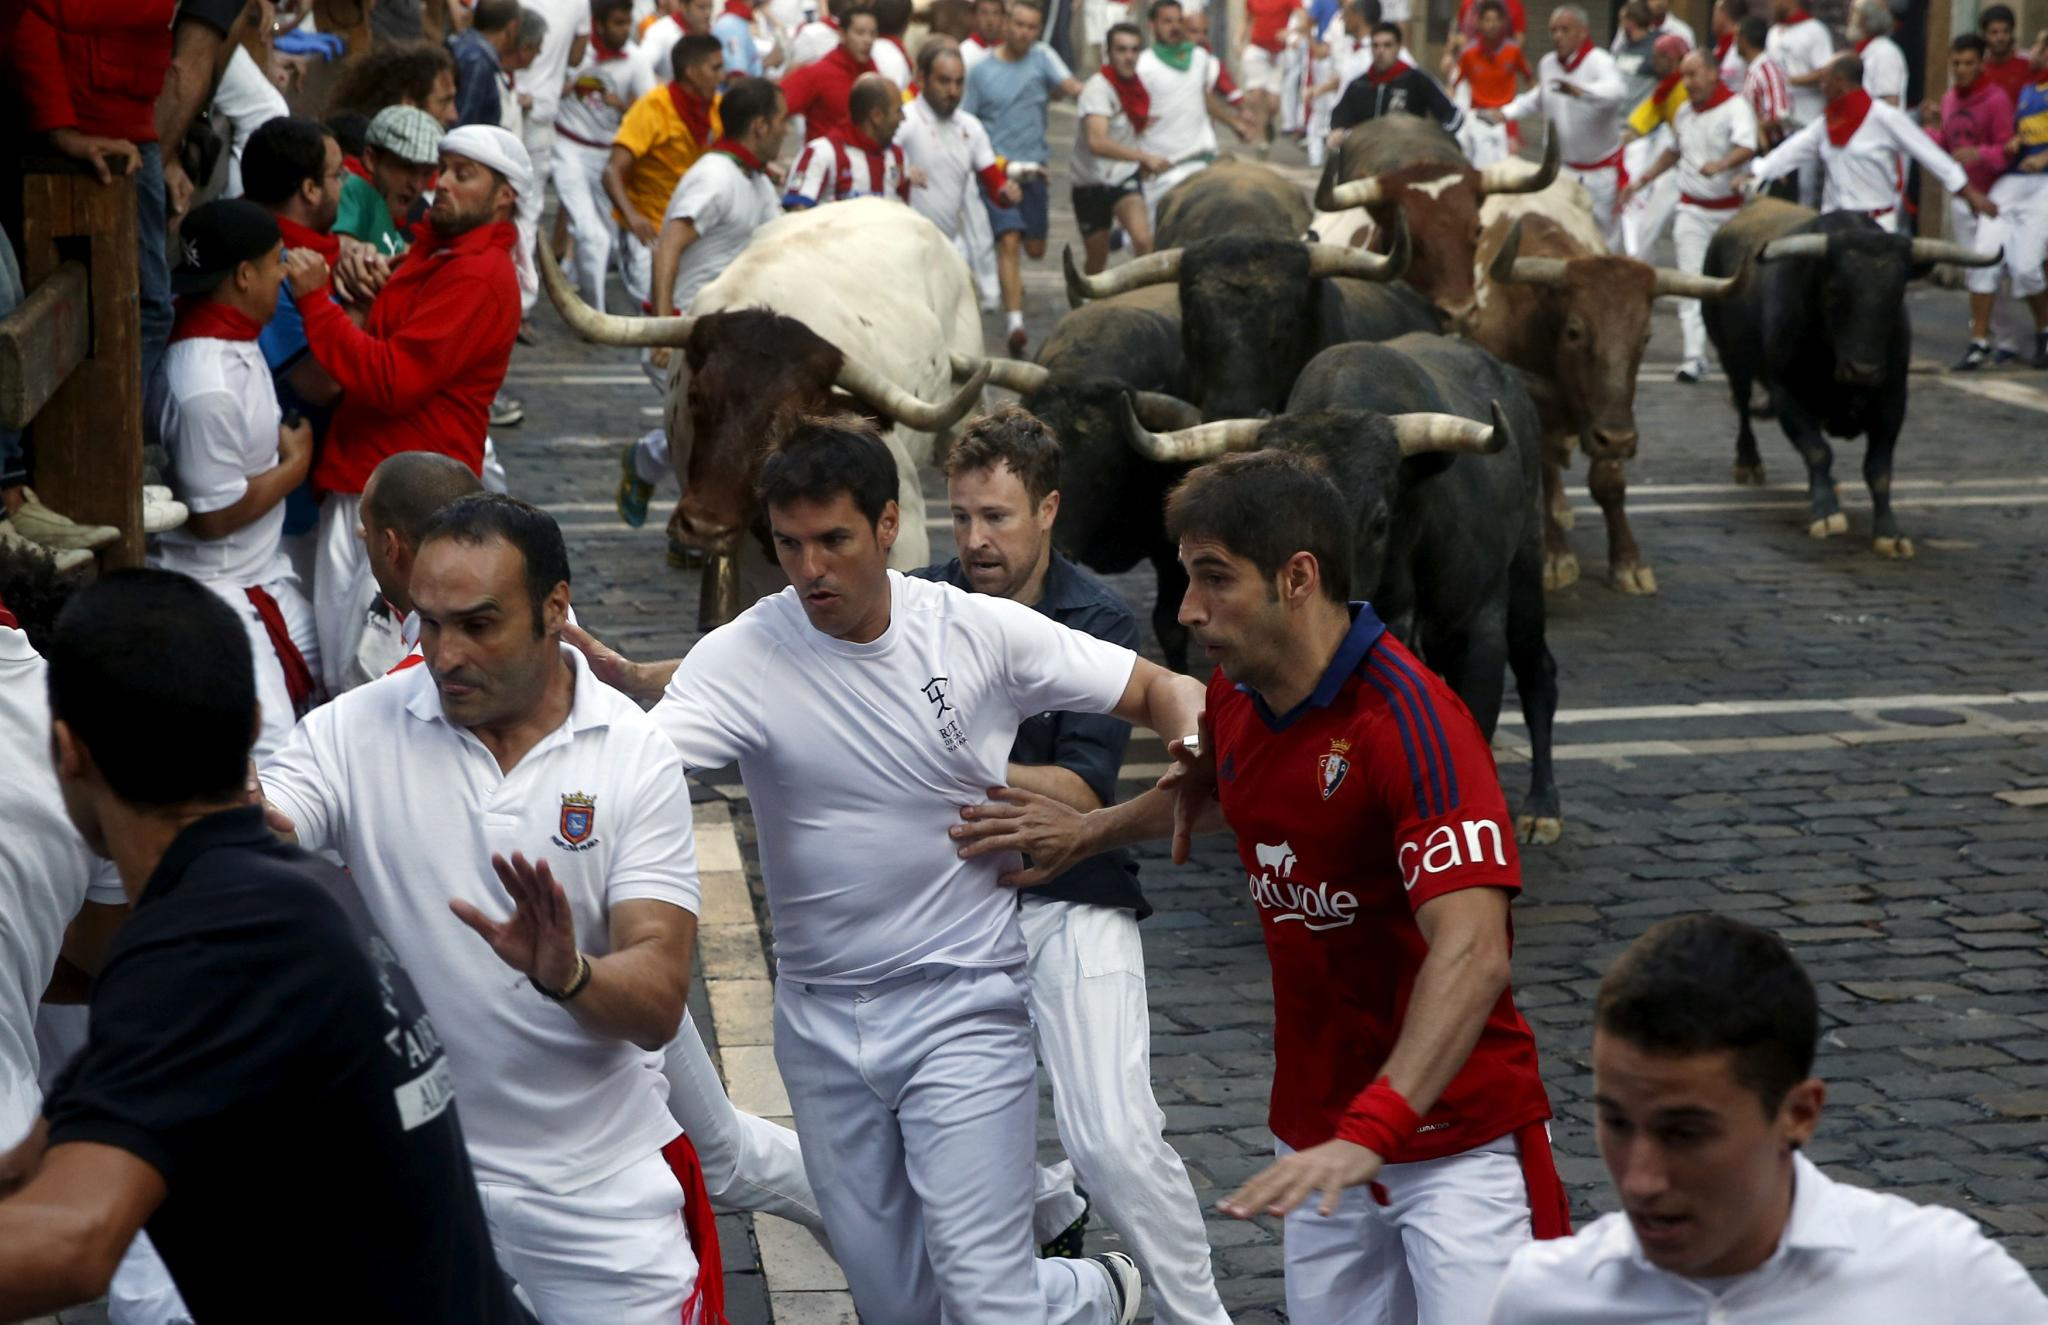 FILE PHOTO: Runners lead Miura fighting bulls during the last day of the running of the bulls of the San Fermin festival in Pamplona